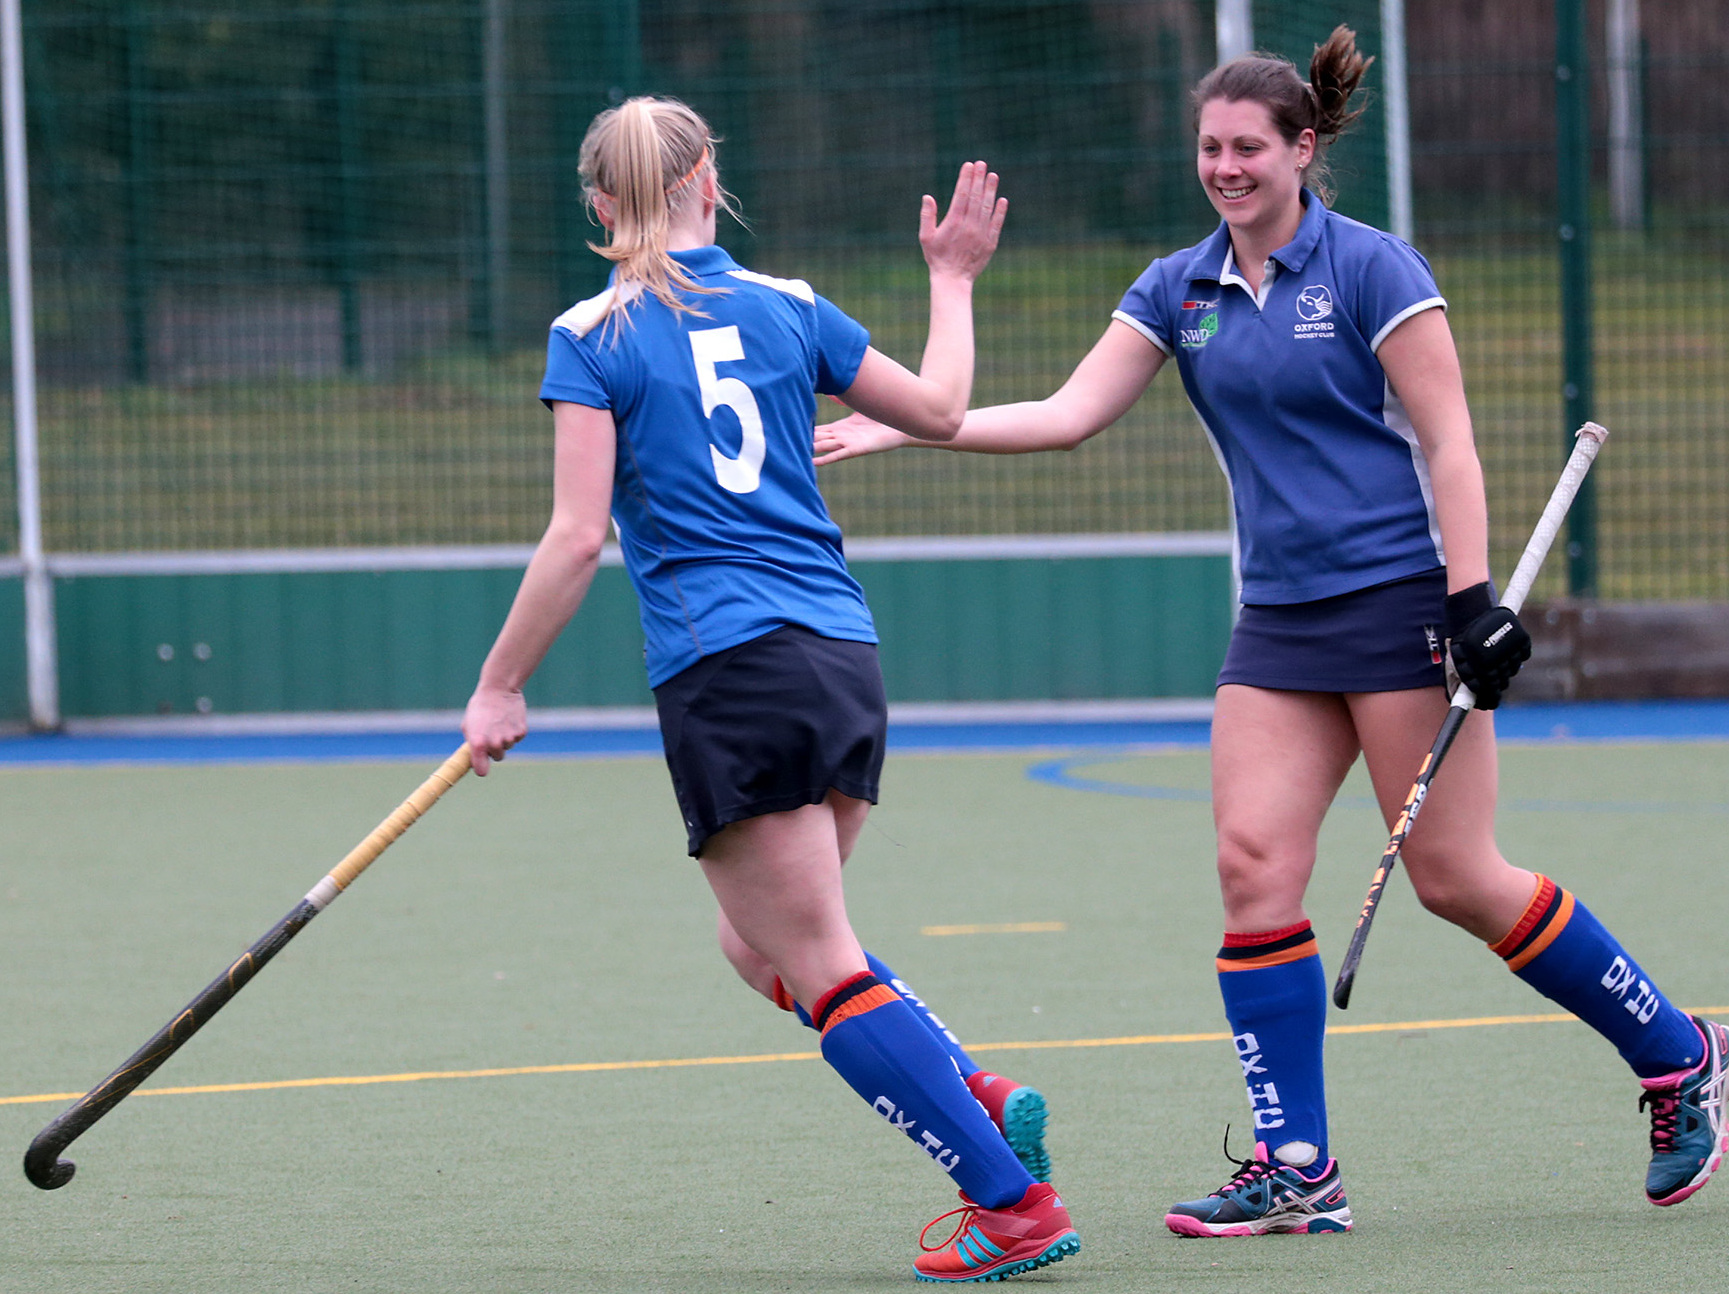 CELEBRATION: Floor Timmer (left ) is congratulated by Kim Warman after scoring during Oxford 3-2 victory over Southgate 2nd, while teammate Olivia Strickland (right) makes a quick break                                                  Pictures: Ric Mellis